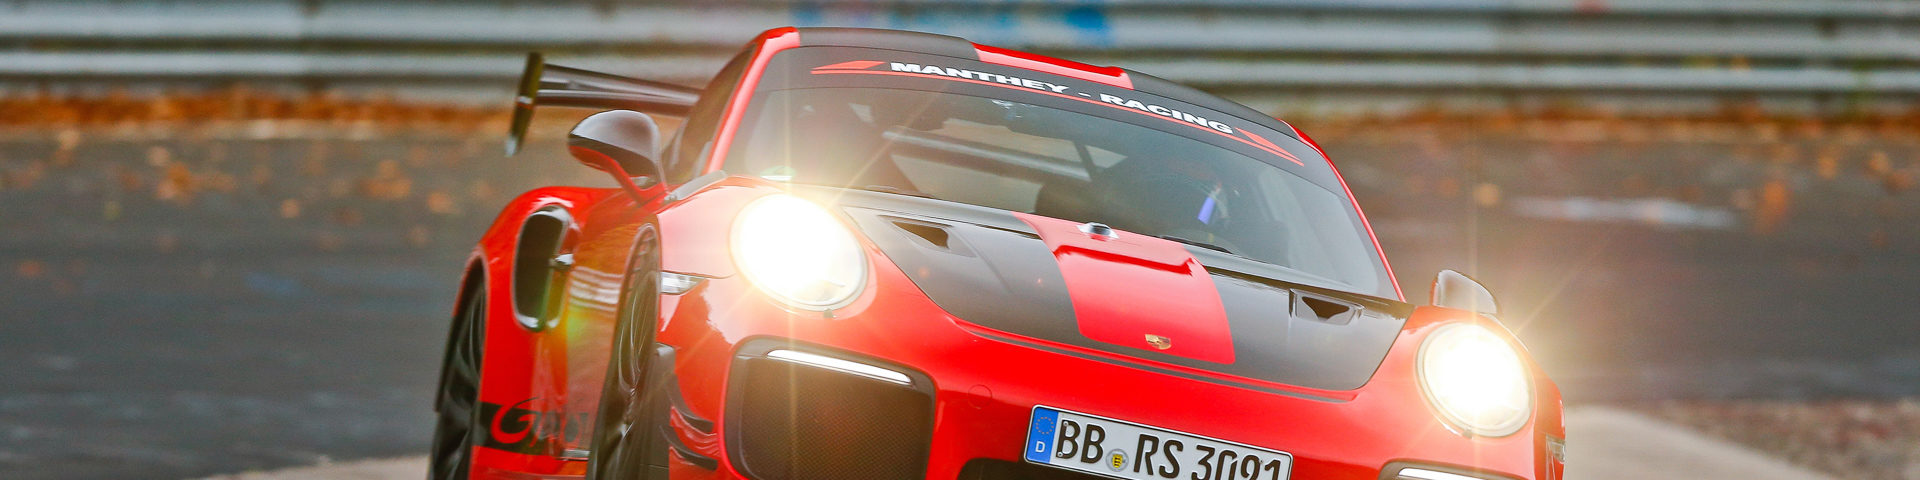 2018 Porsche GT2RS Nürburgring Record Manthey Racing